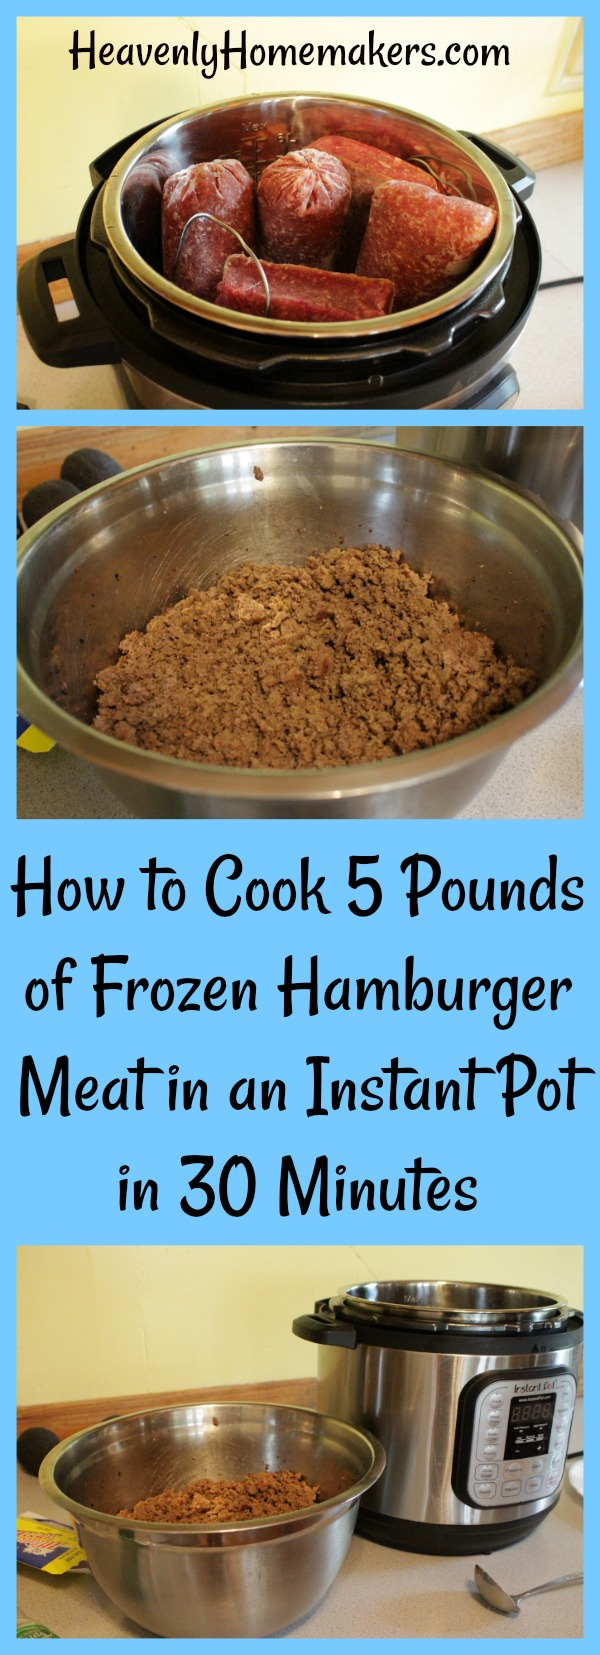 How to Cook 5 Pounds of Frozen Hamburger in an Instant Pot